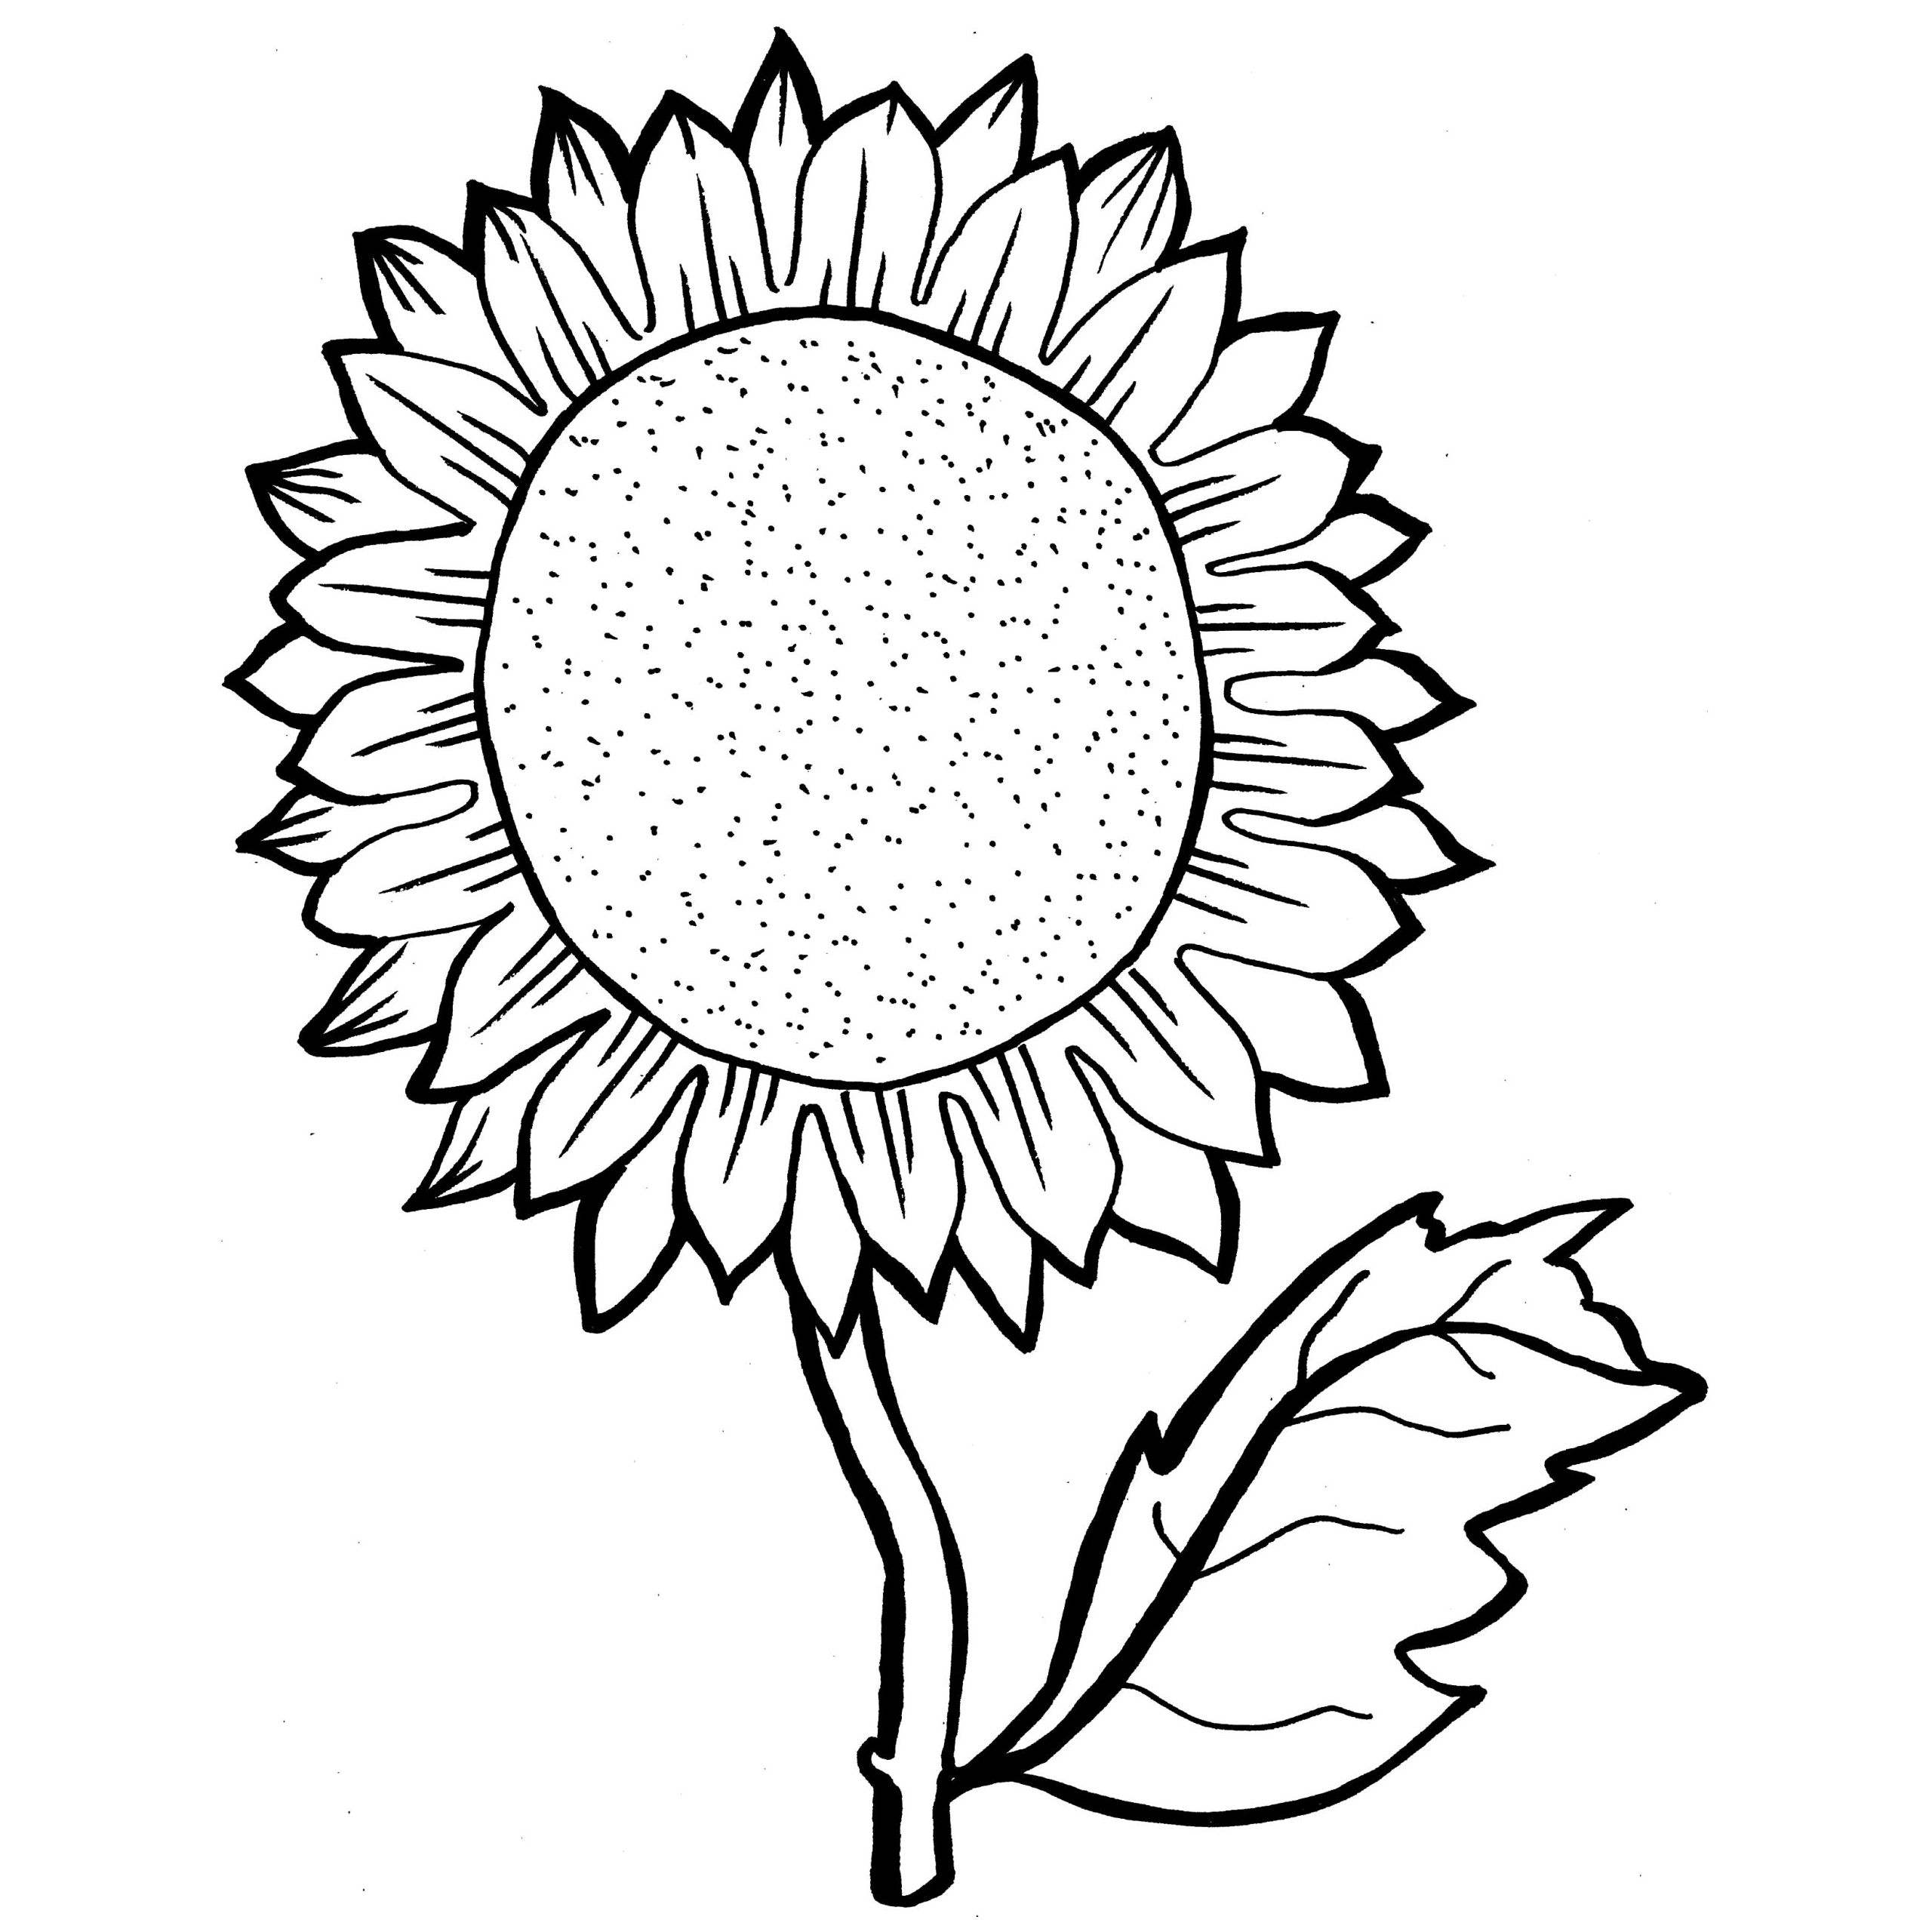 sunflower coloring page coloring pages free sunflower coloring pages for kids coloring page sunflower